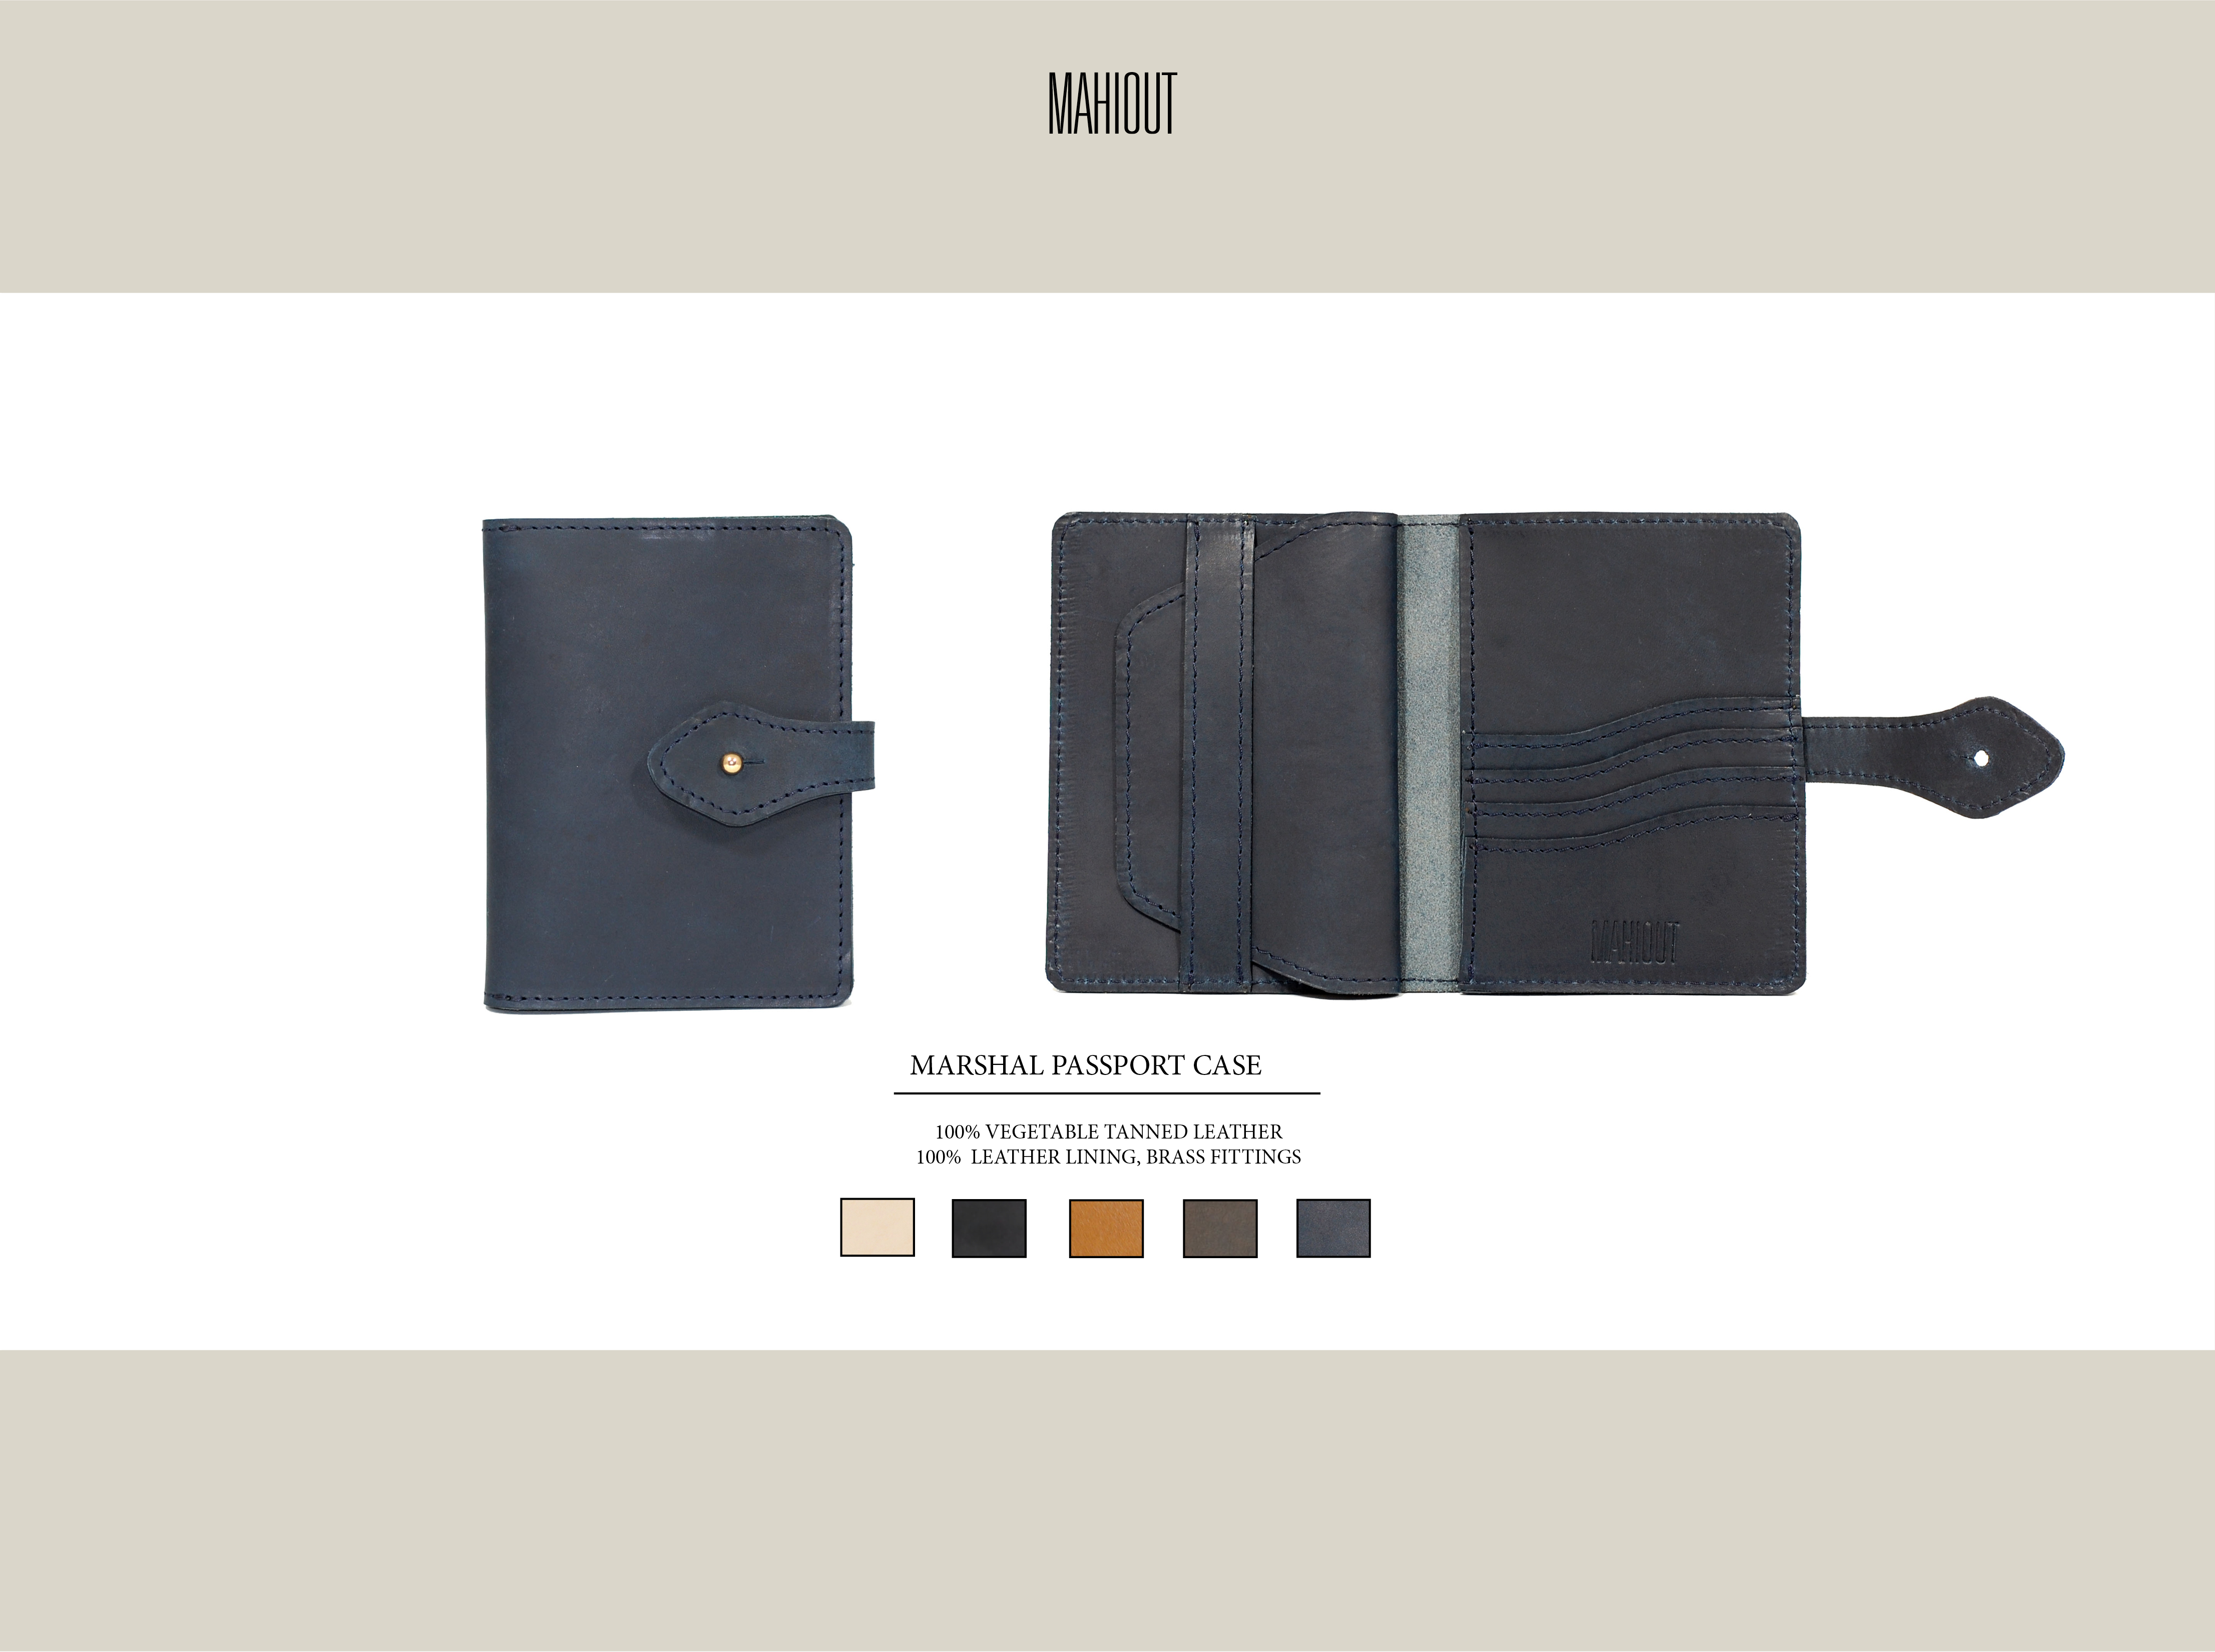 mahiout marshal passport case in leather